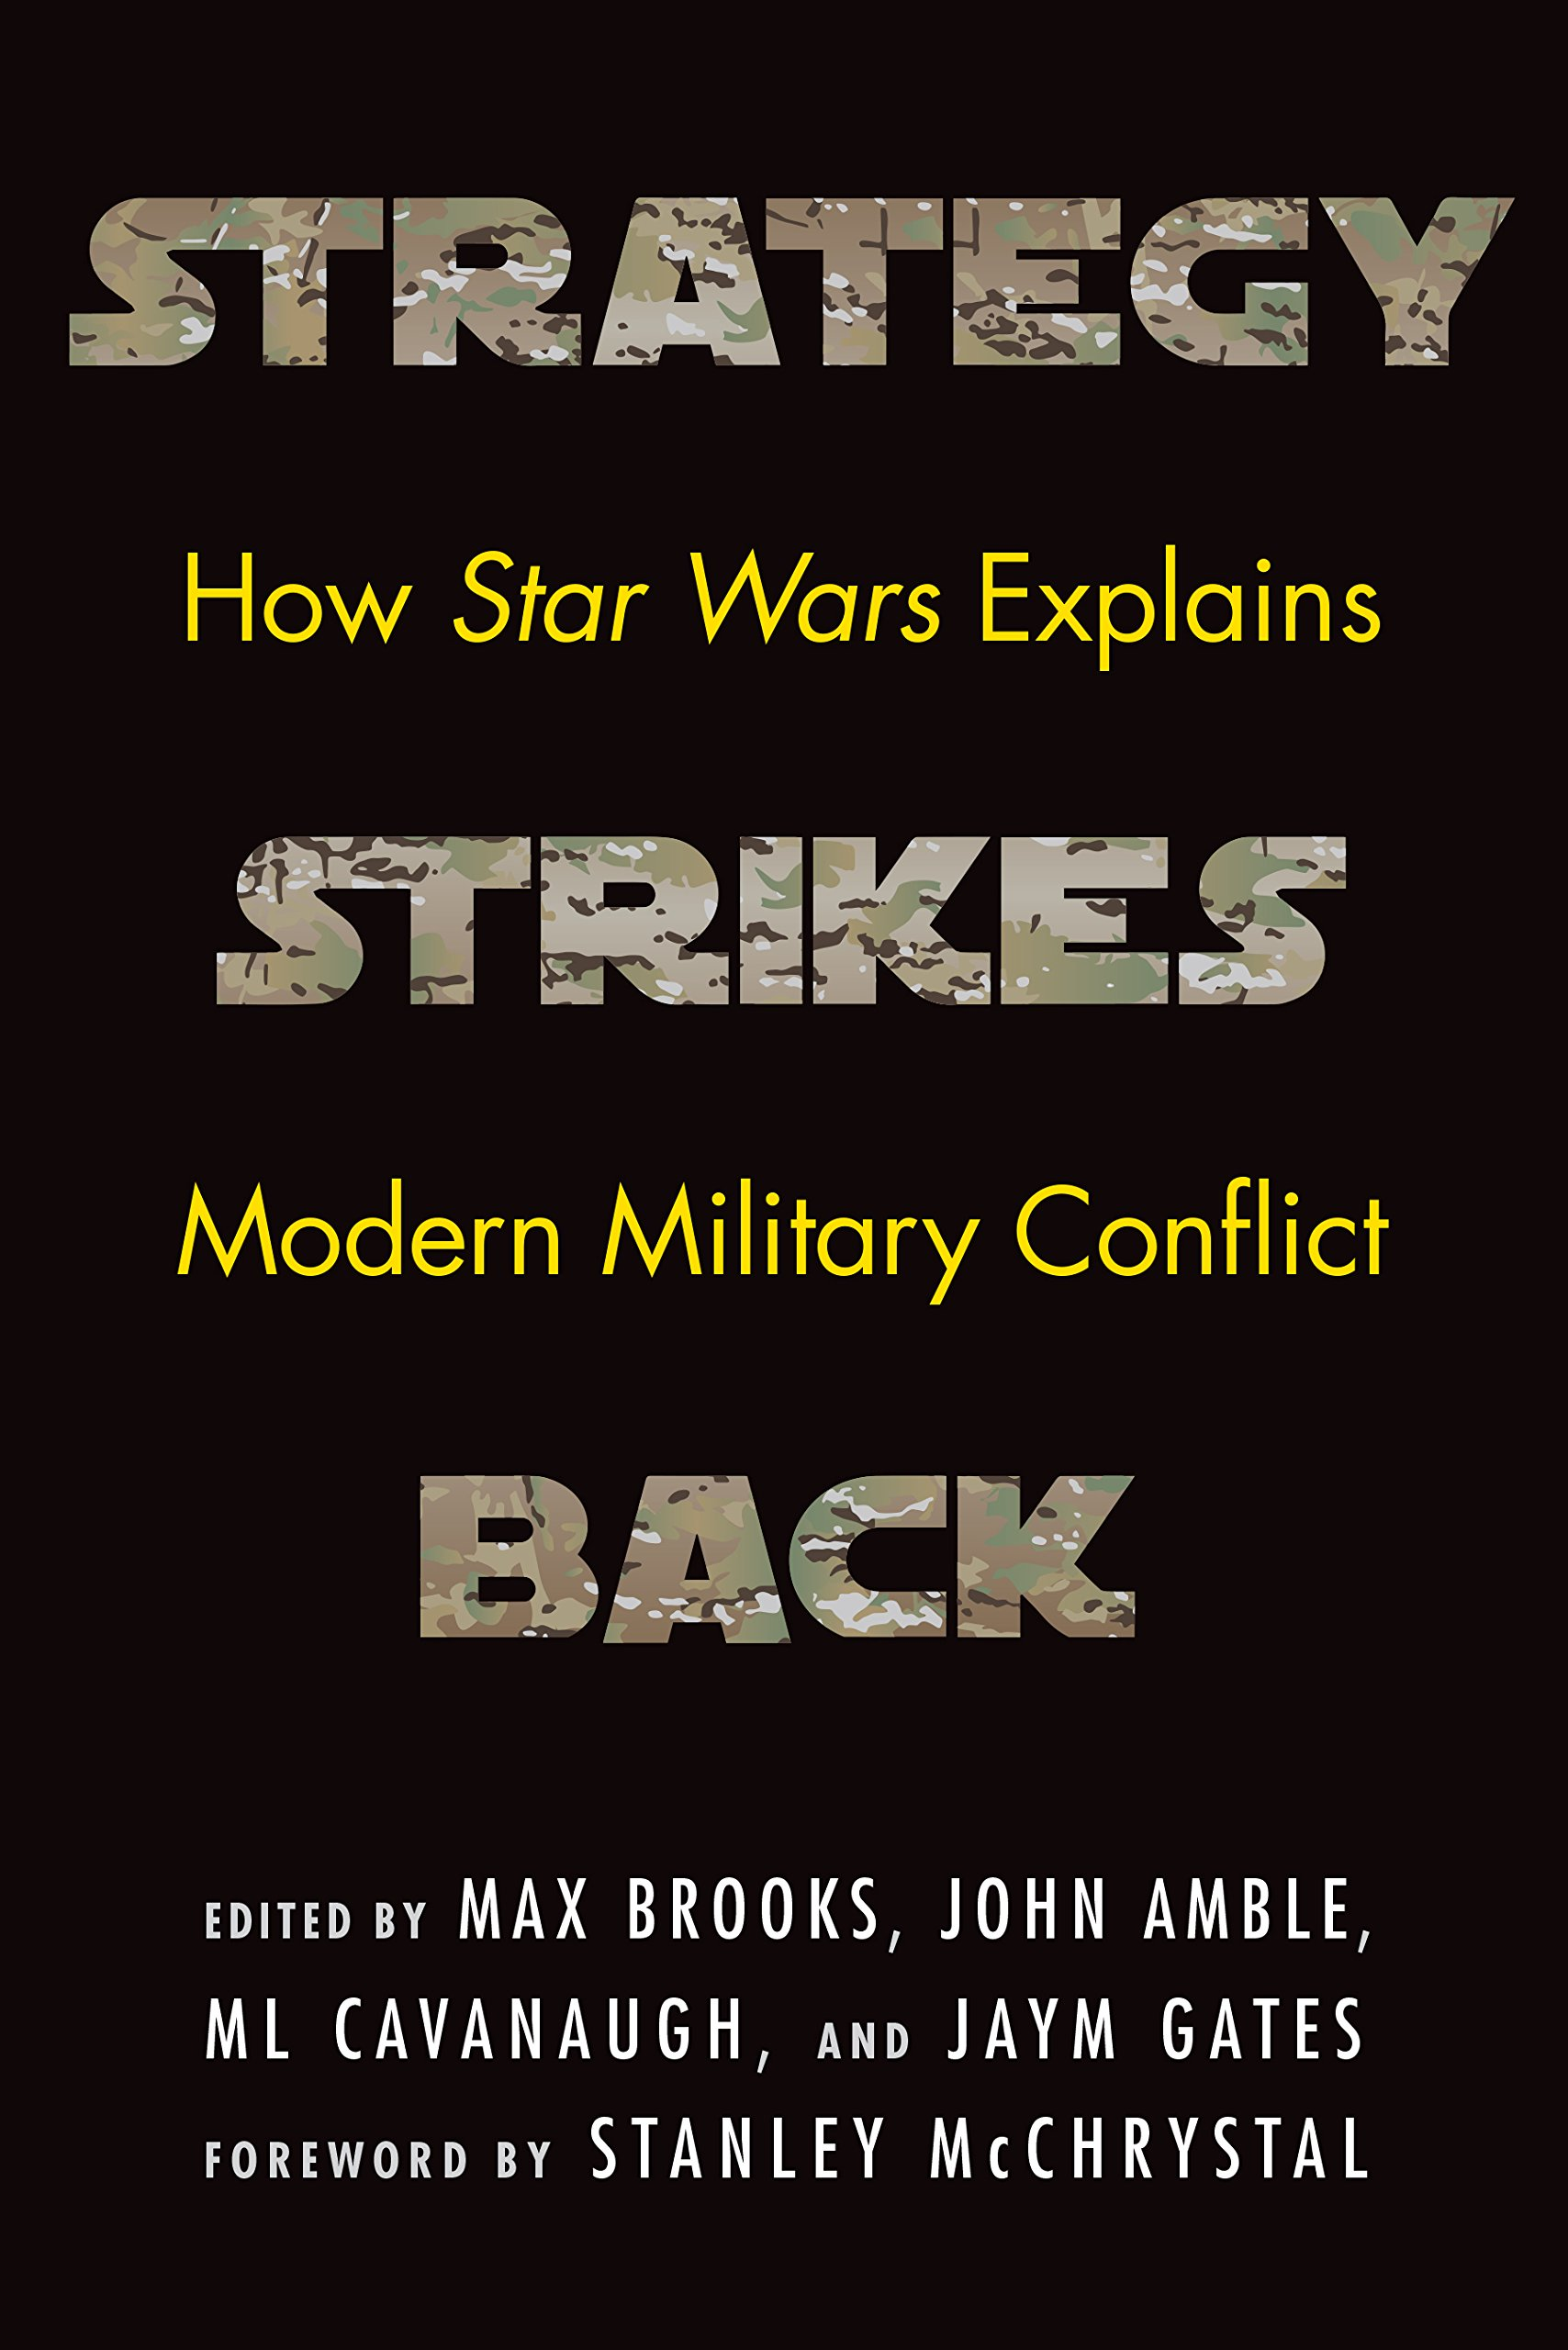 How Not to Build an Army: The Empire's Flawed Military Force